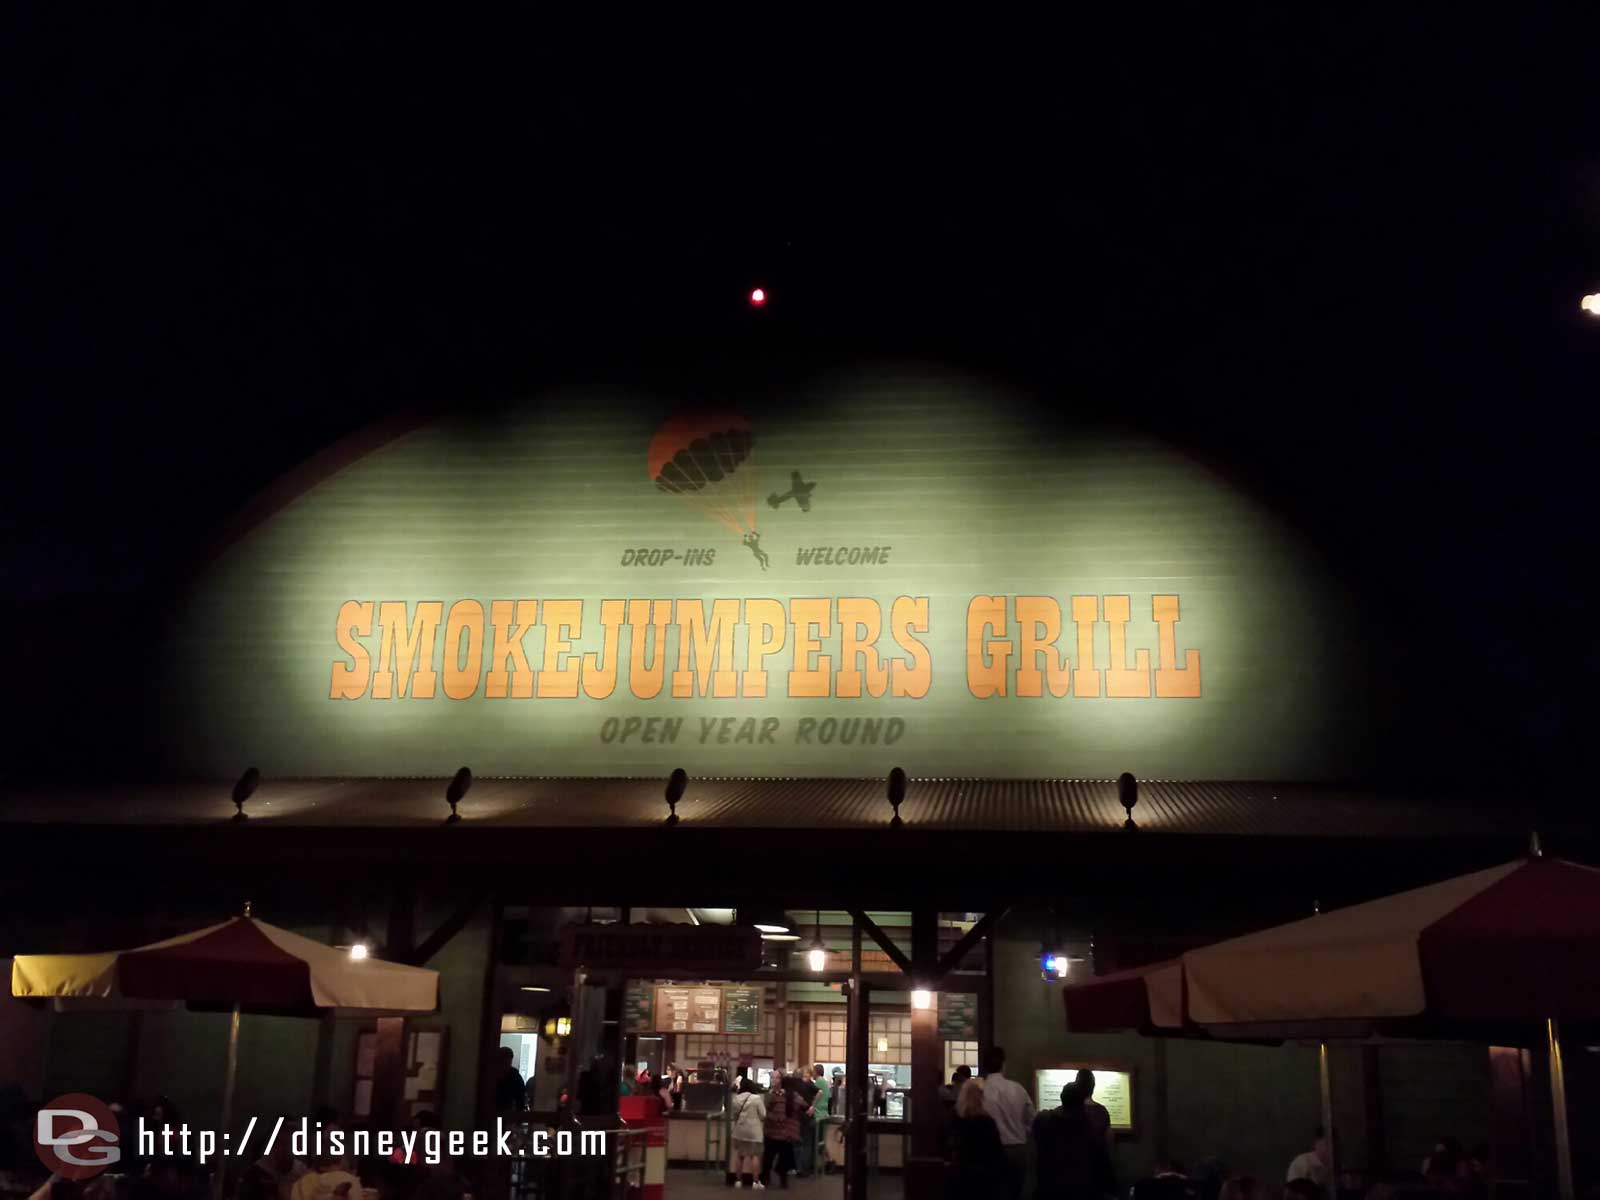 Smokejumpers Grill entrance after dark at Disney California Adventure